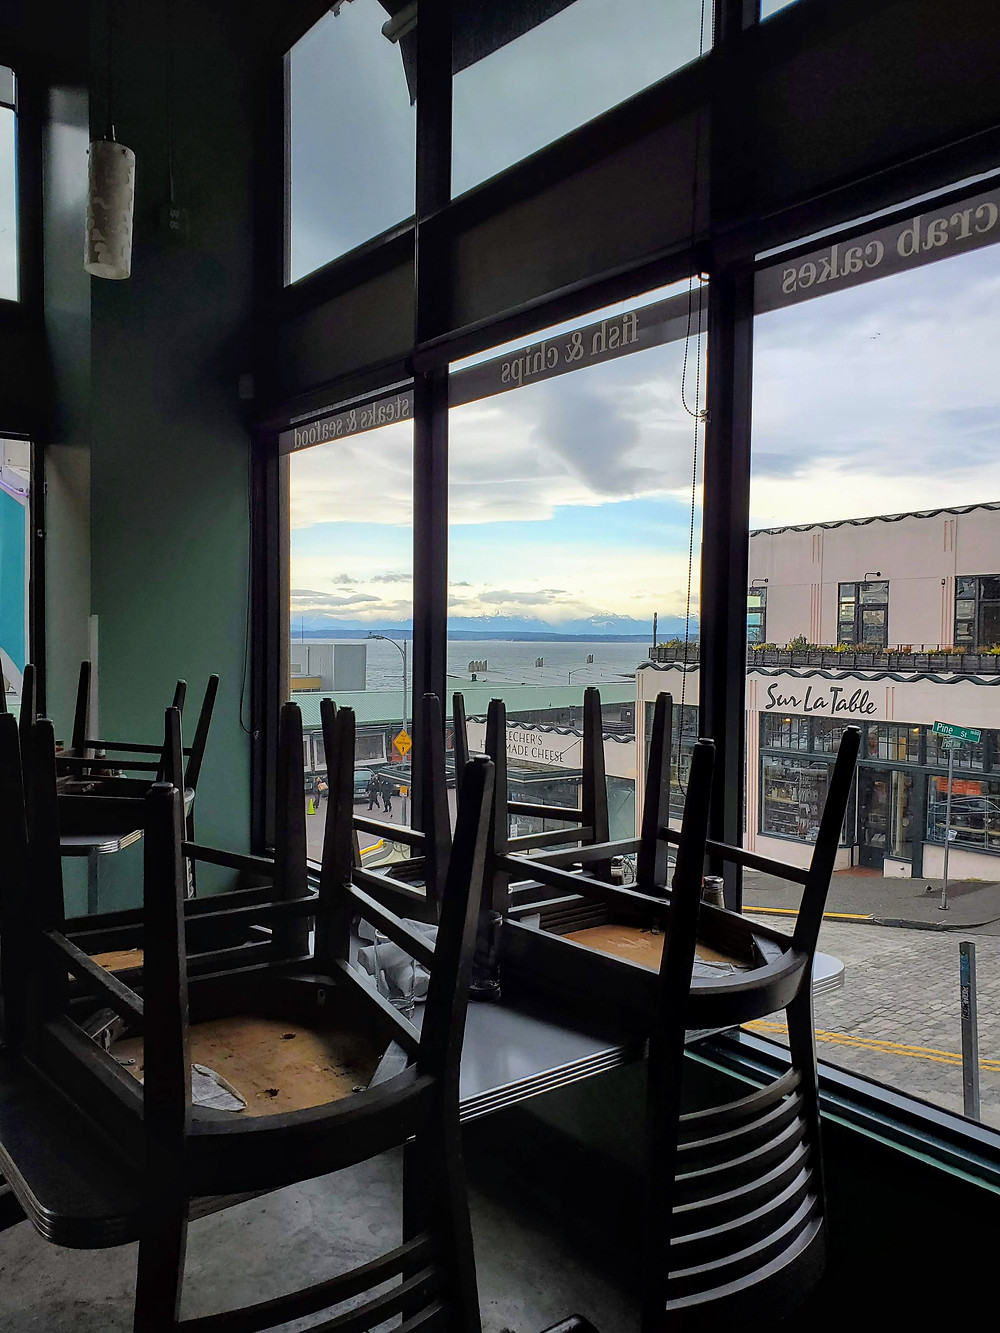 One of my third places was The Steelhead Diner. The Davis restaurants were perhaps the first to close down in the wake of the coronavirus. This restaurant was also a Pike Place Market favorite for locals and visitors alike.